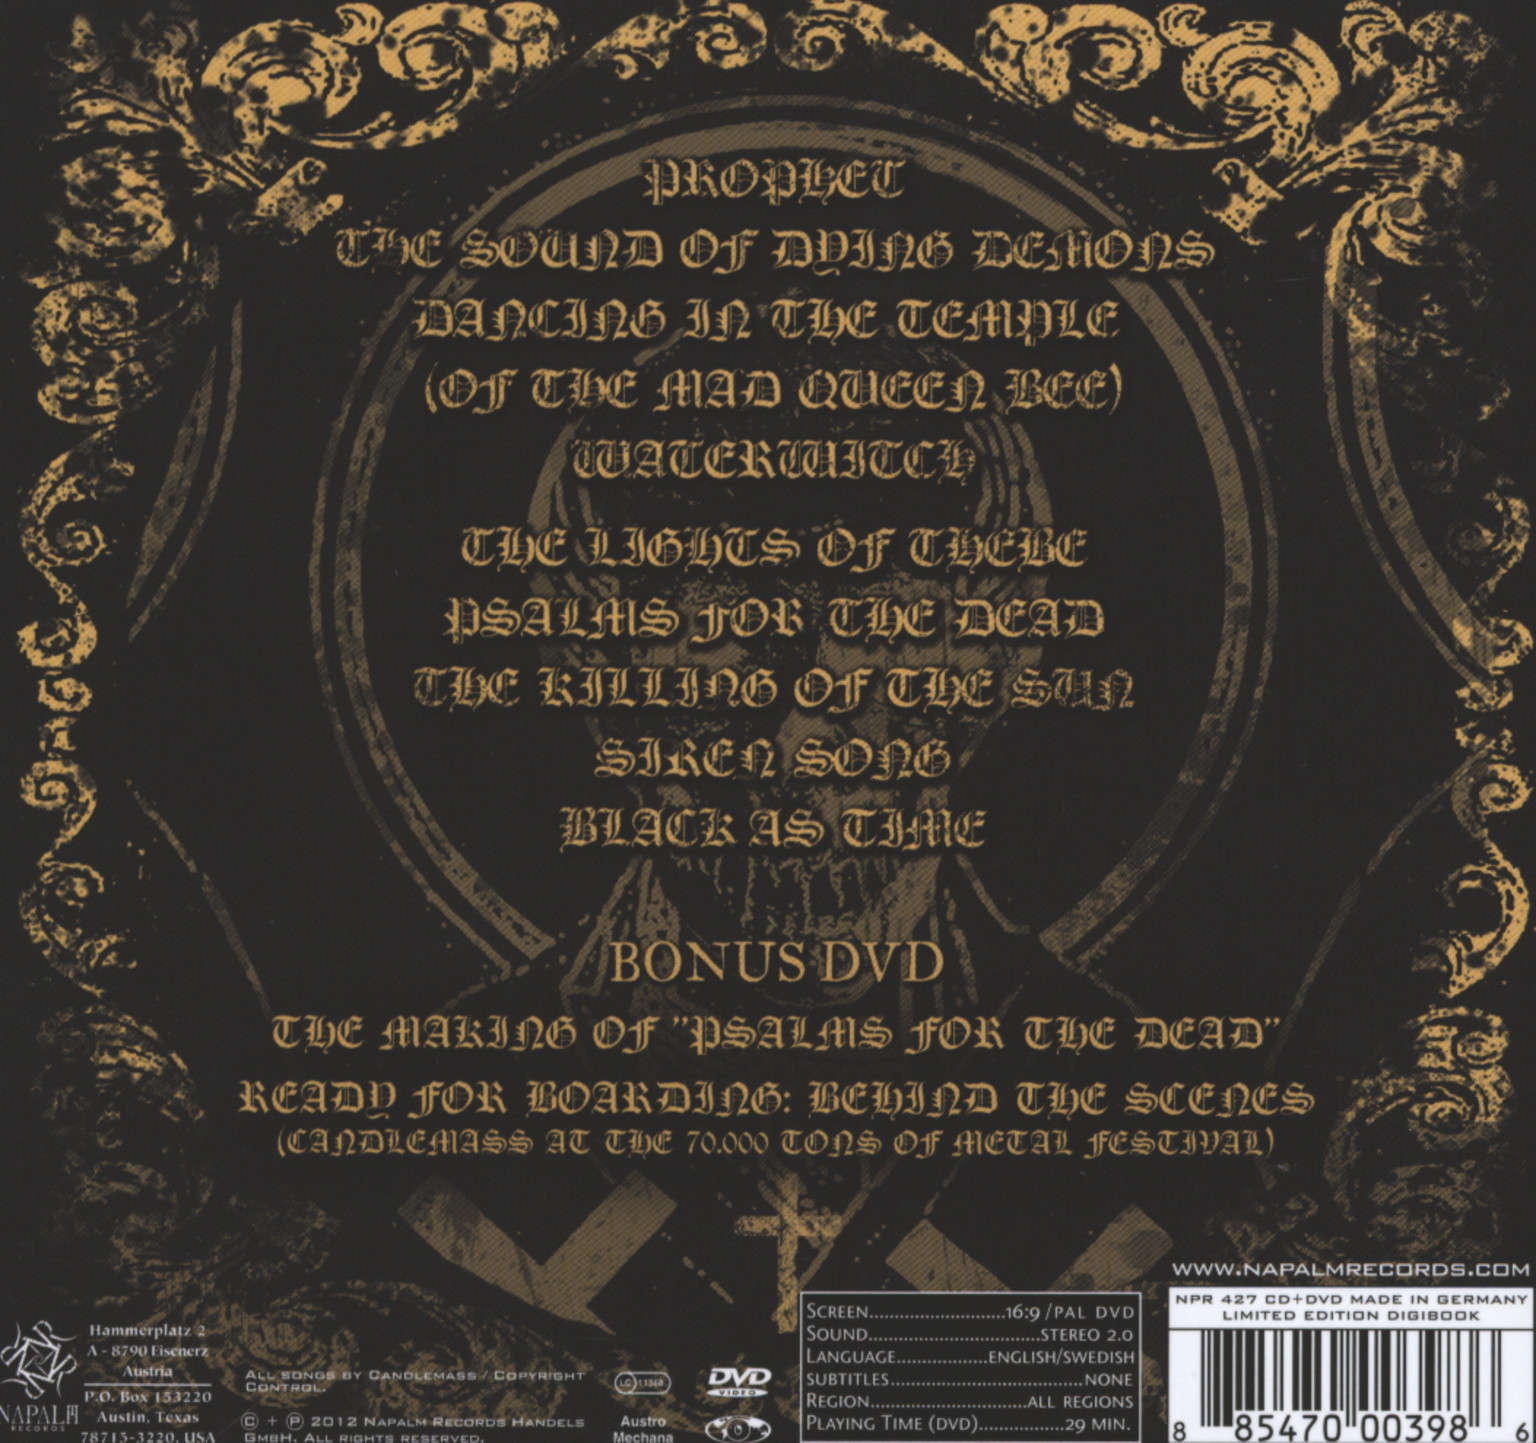 Candlemass: Psalms For The Dead, CD